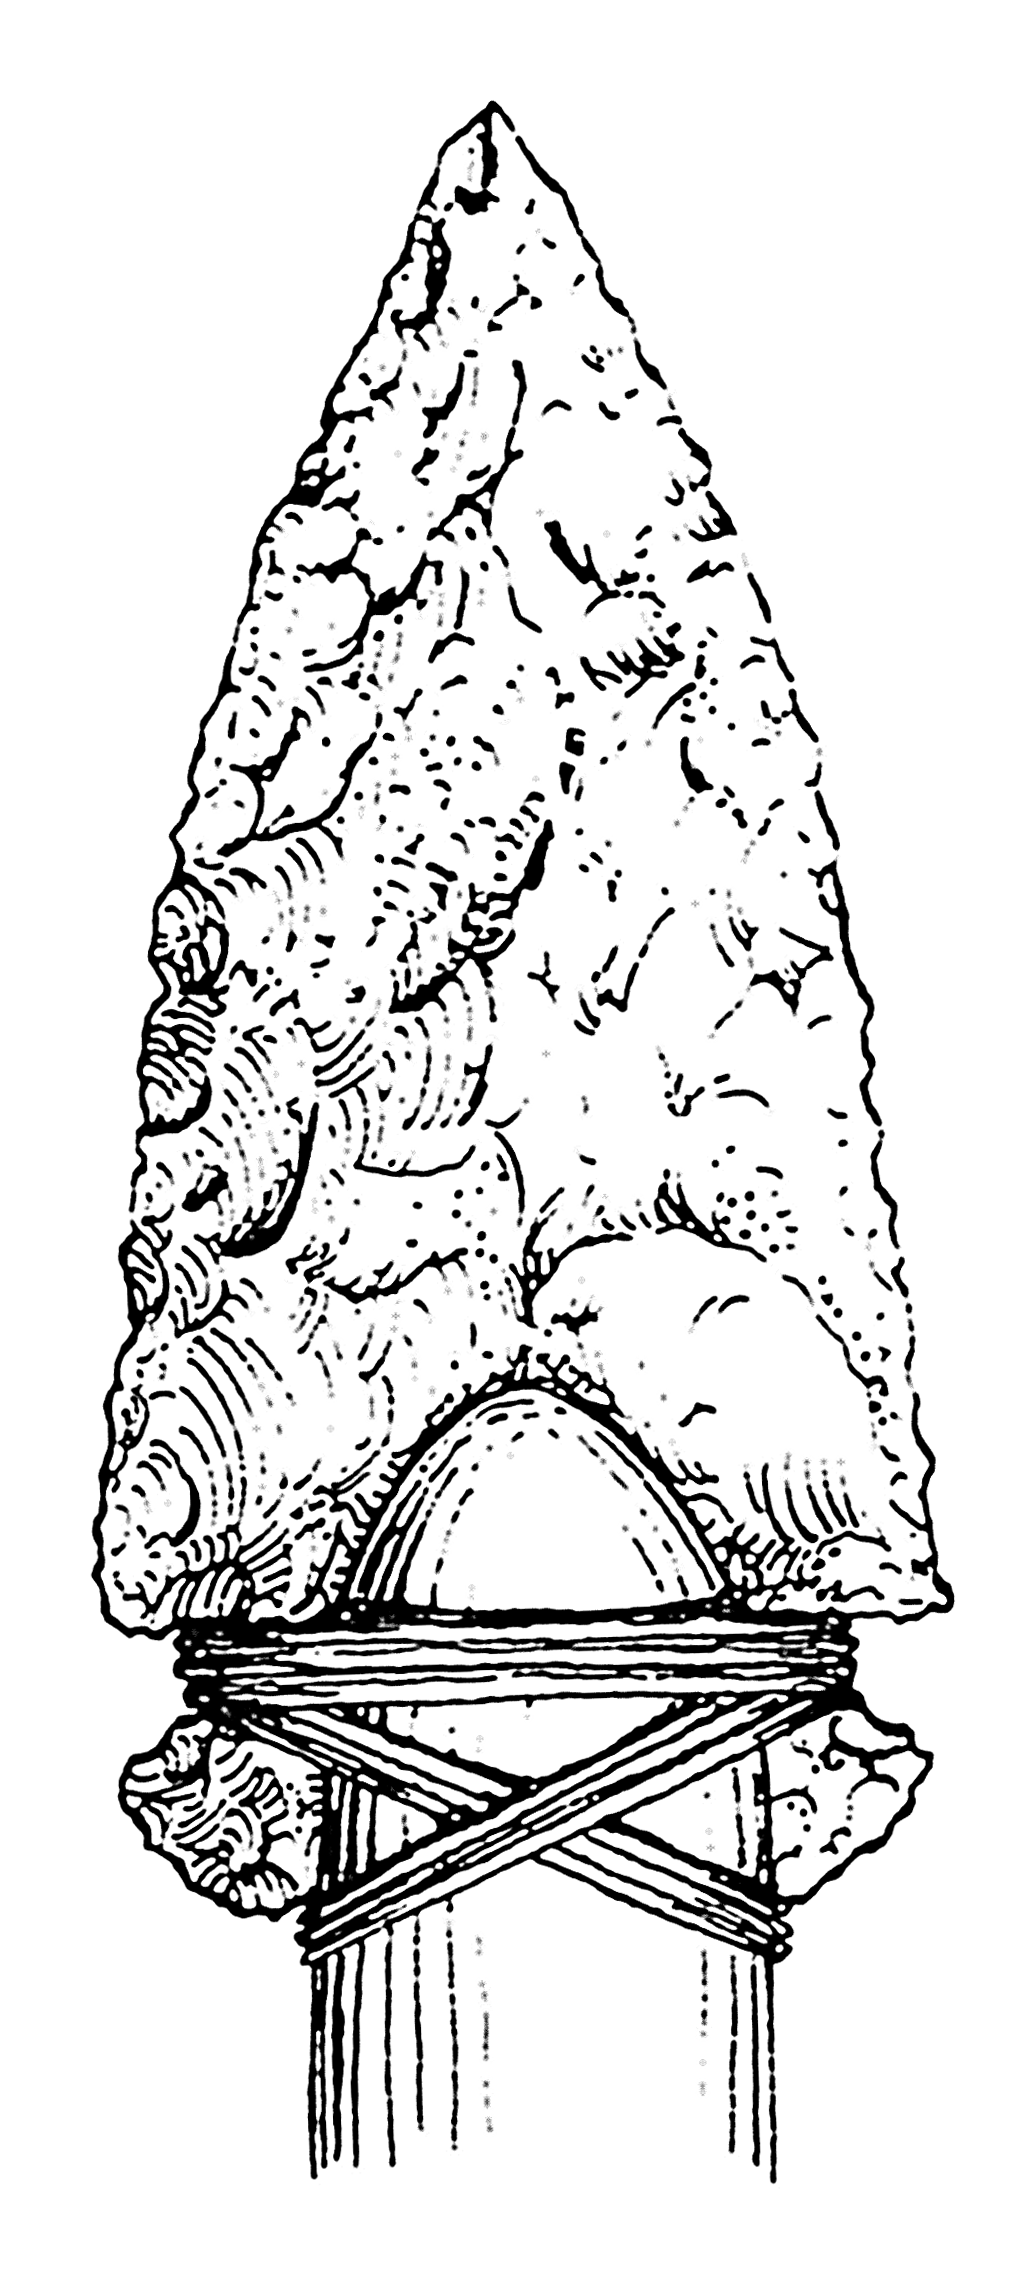 arrowheads coloring pages - photo#6